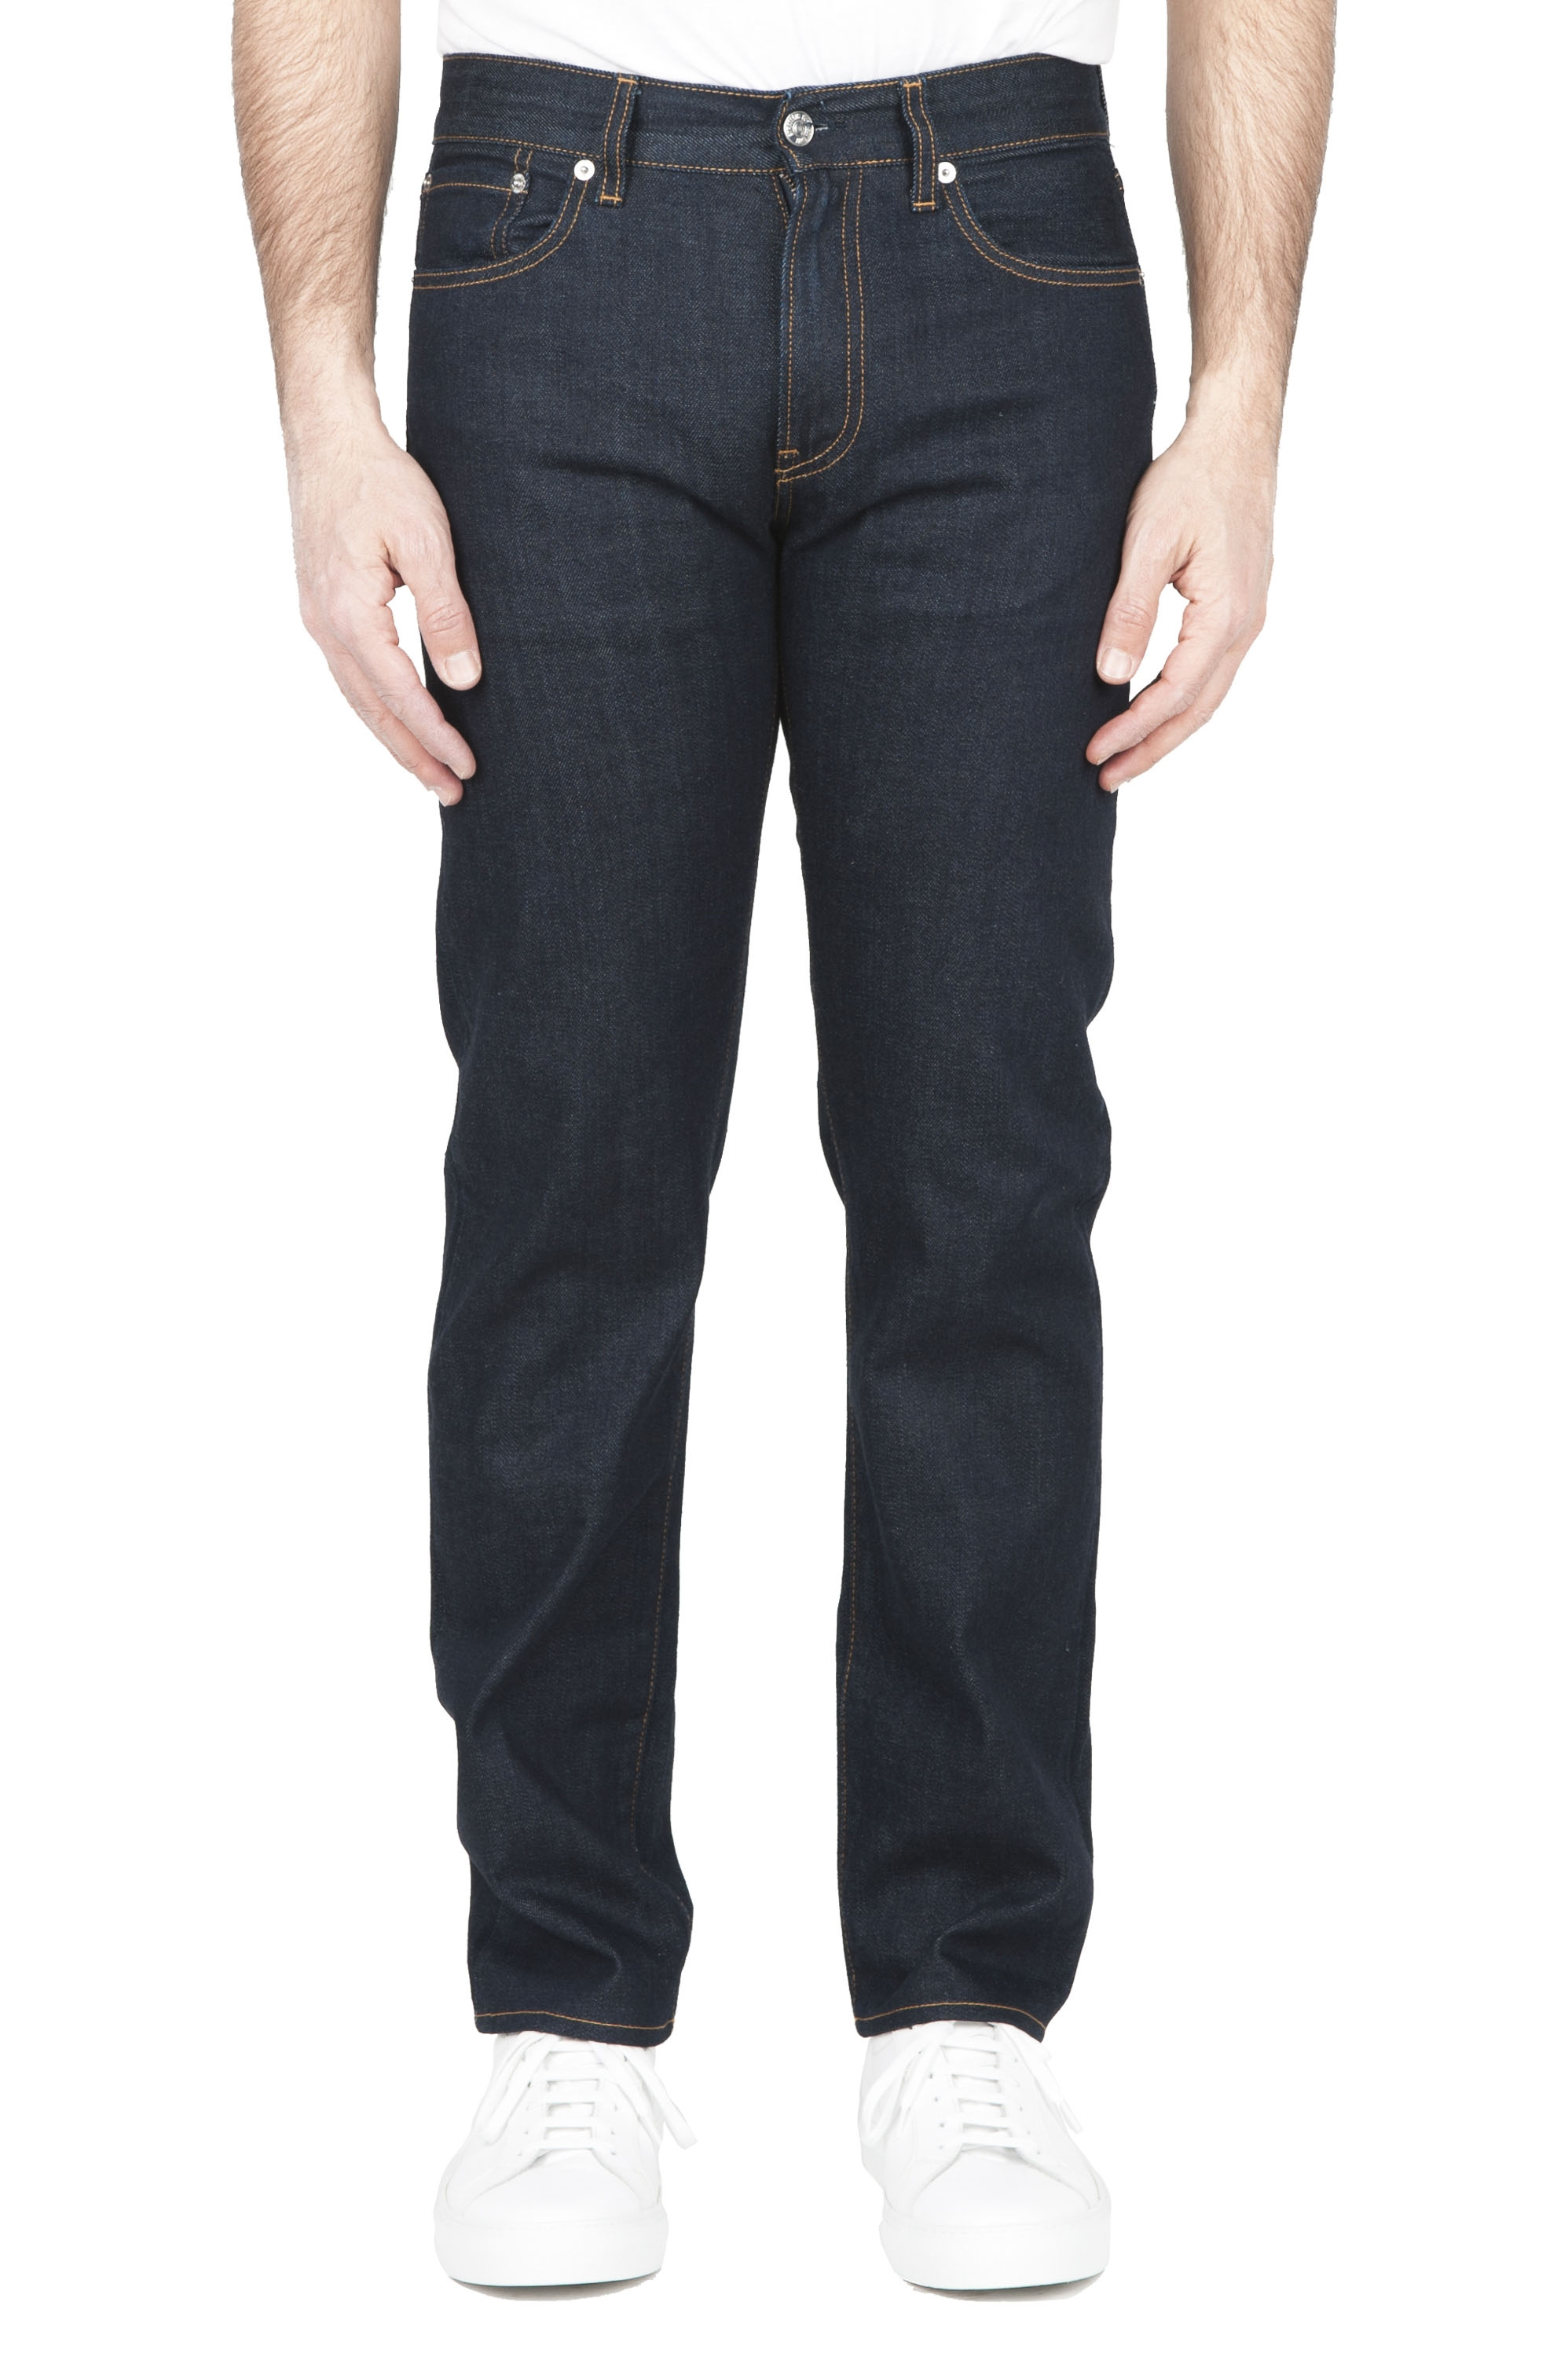 SBU 01449 Natural indigo dyed washed japanese selvedge denim blue jeans 01